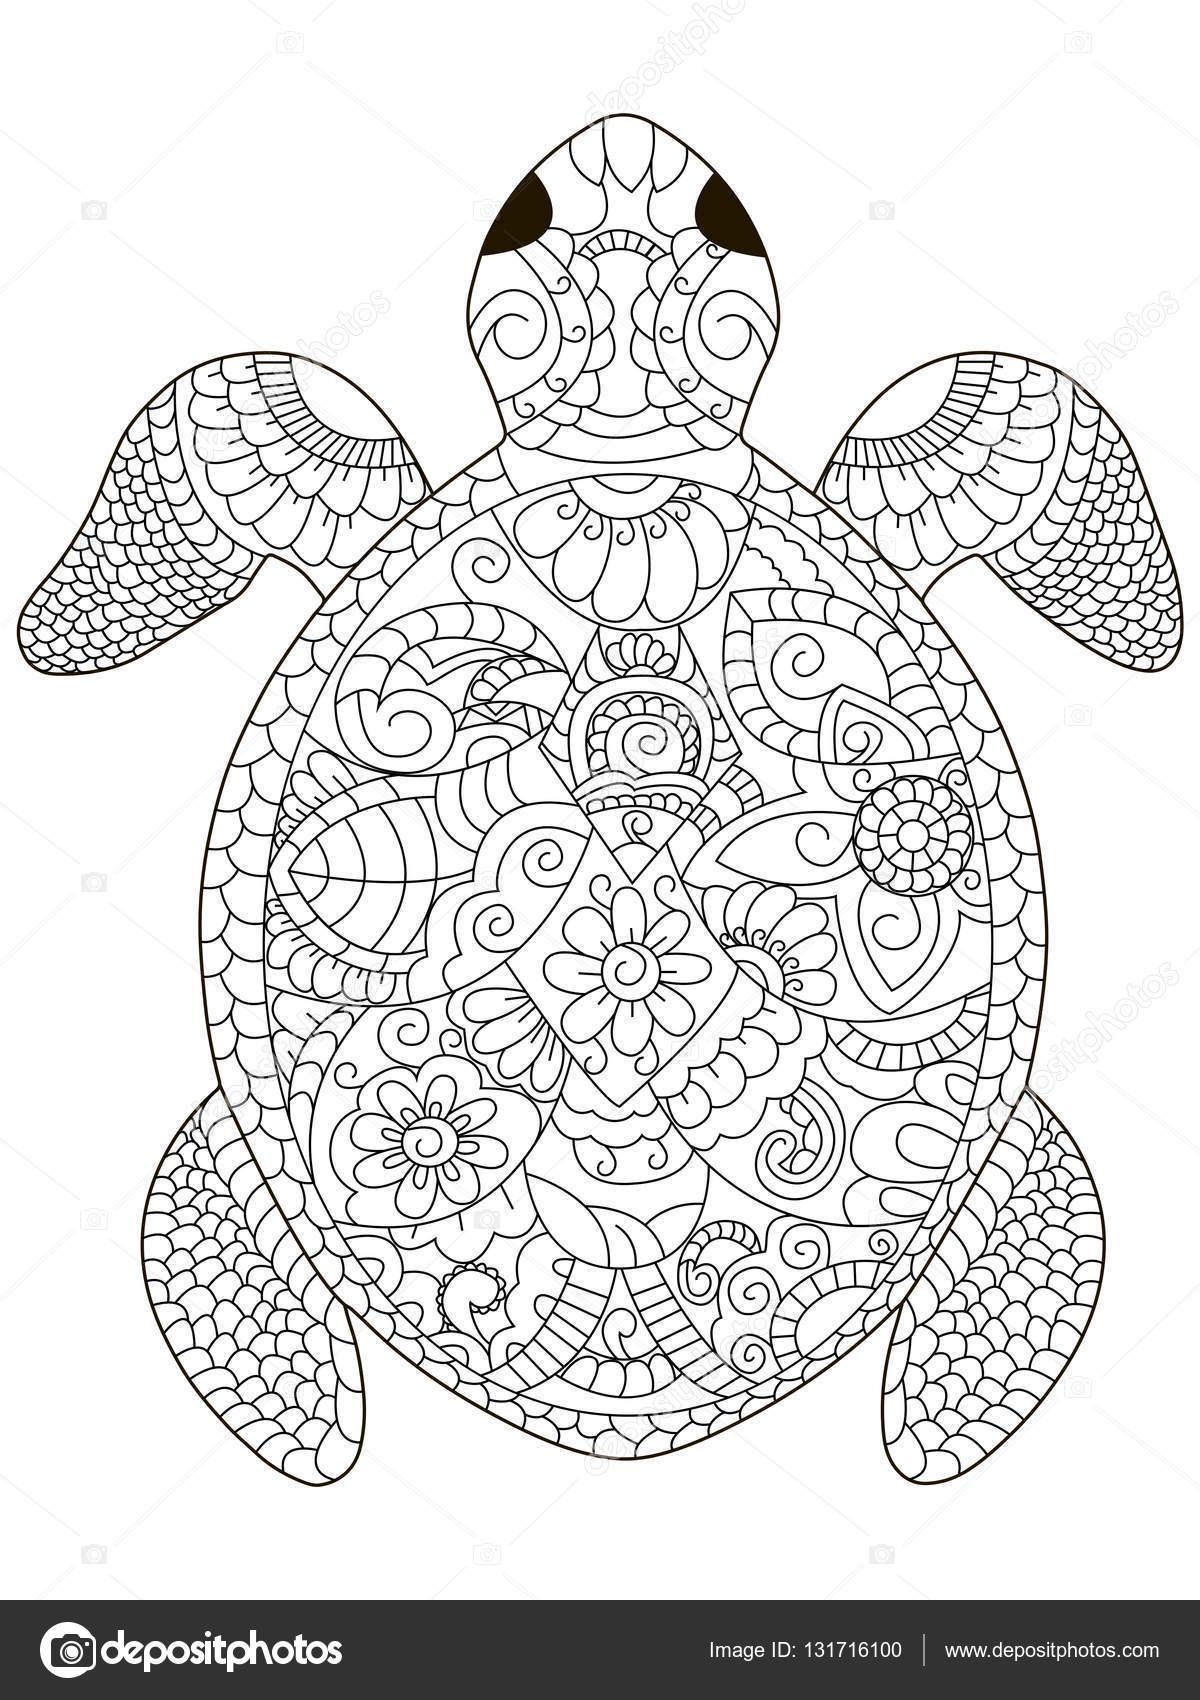 afbeelding coloring turtle penguin door barbara